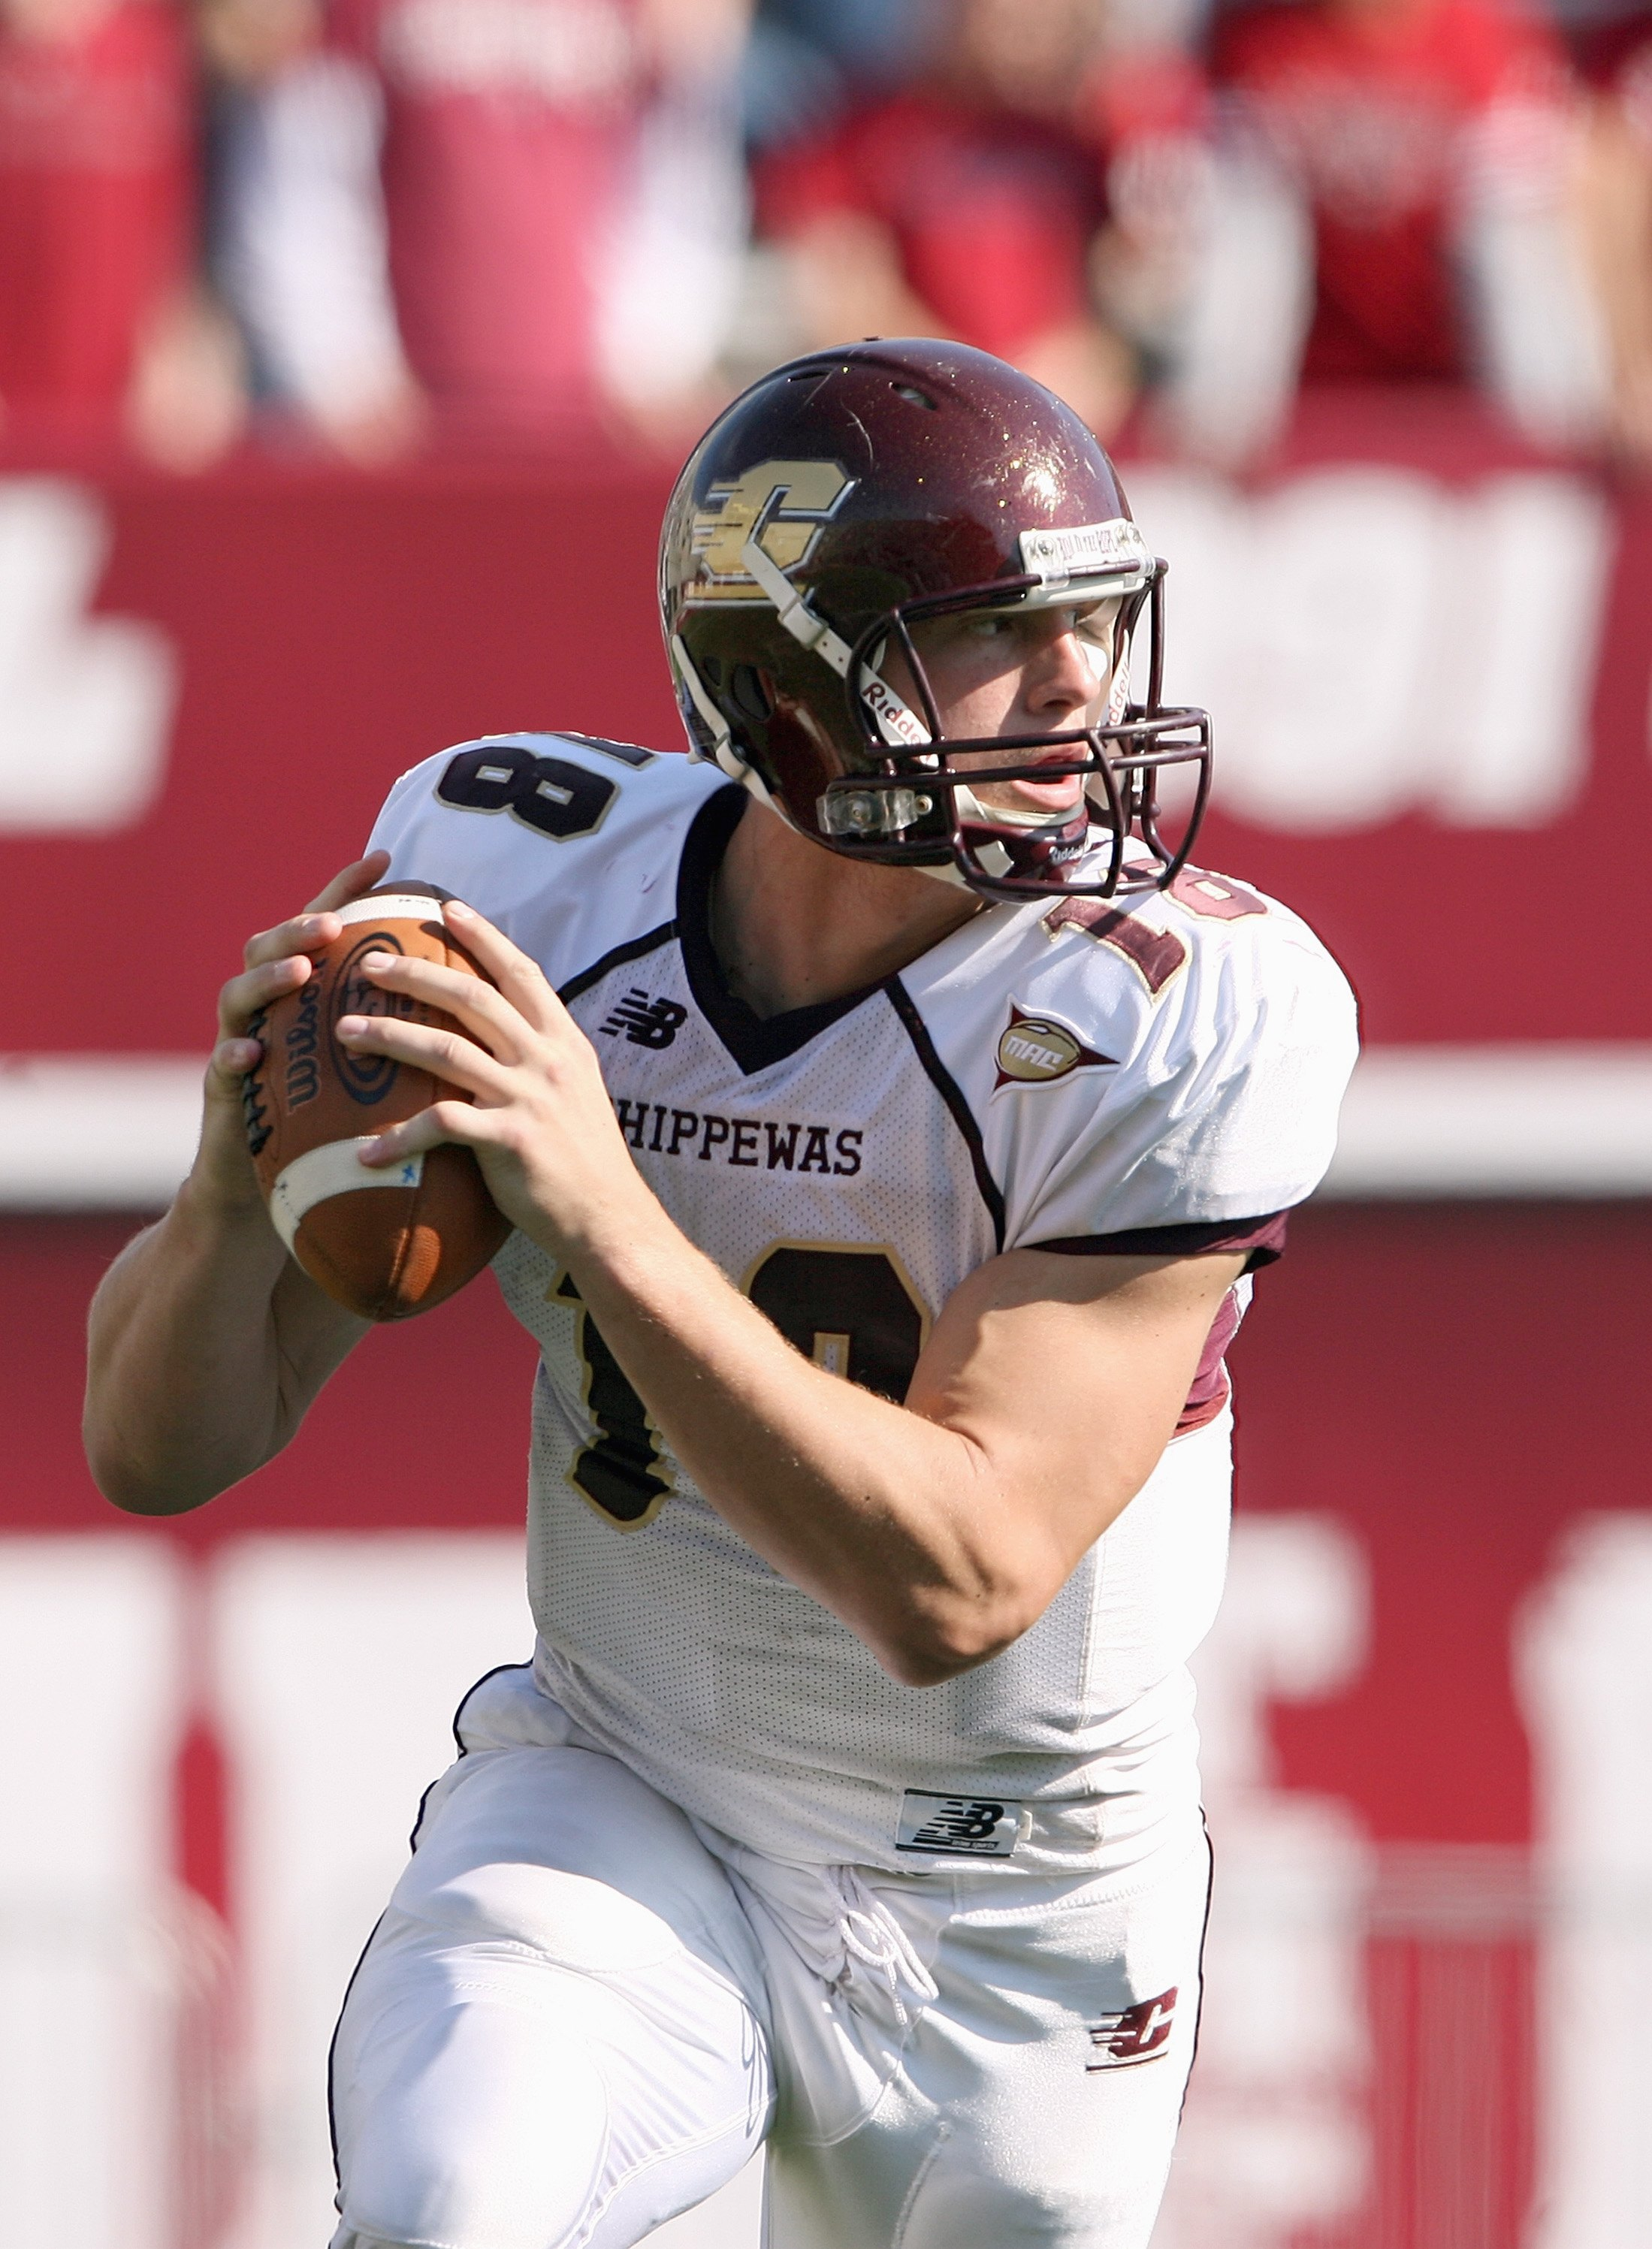 BLOOMINGTON, IN - NOVEMBER 01:  Quarterback Brian Brunner #18 of the Central Michigan Chippewas moves to pass the ball during the game against the Indiana Hooisers at Memorial Stadium on November 1, 2008 in Bloomington, Indiana.  (Photo by Andy Lyons/Gett